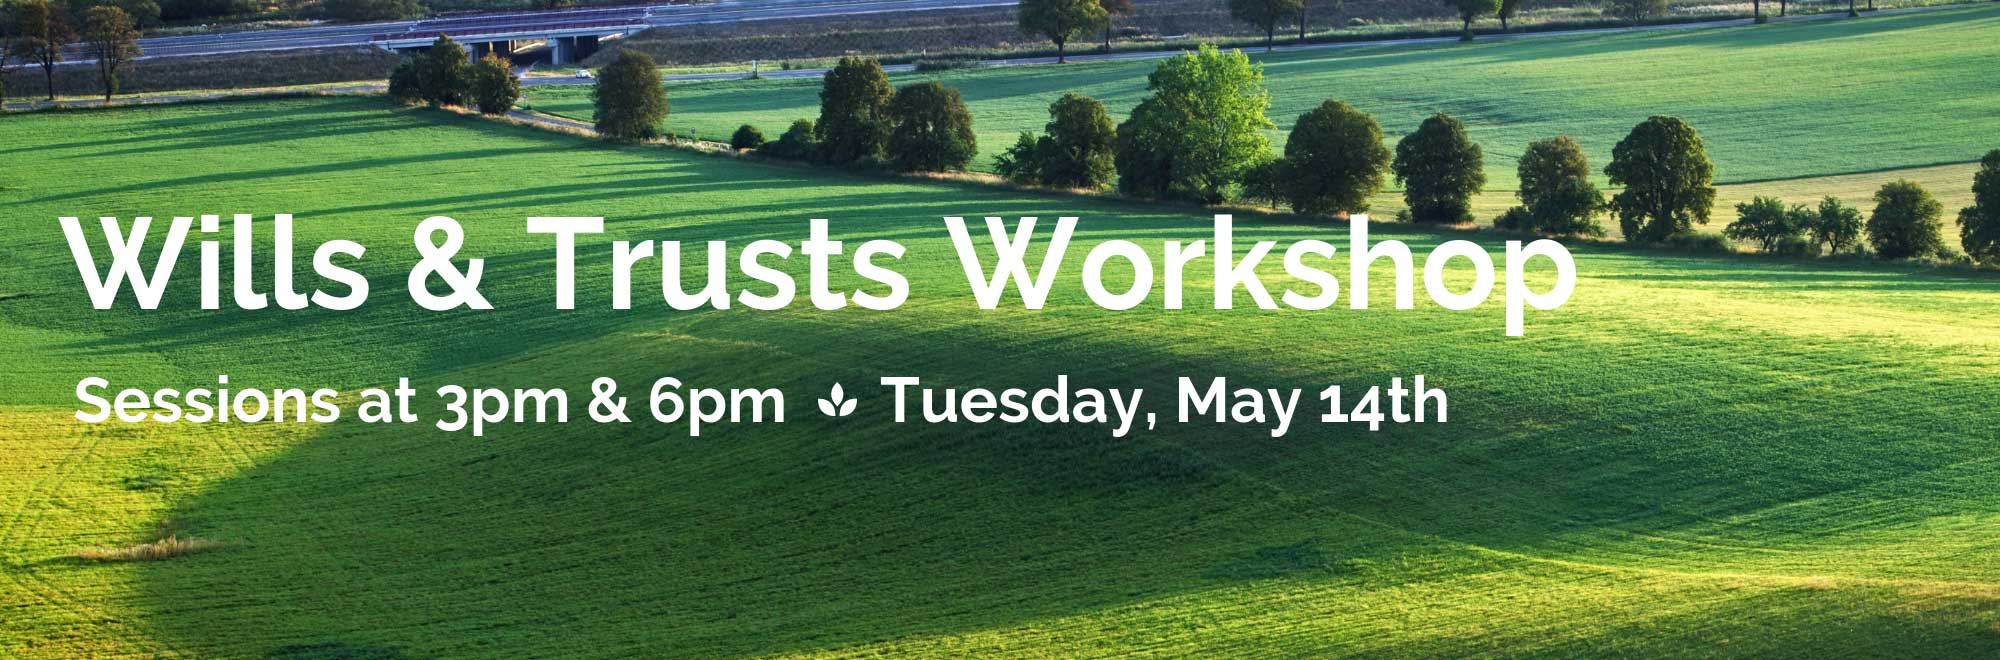 Sign up for our Wills and Trusts Workshop May 14th at 3 pm or 6 pm